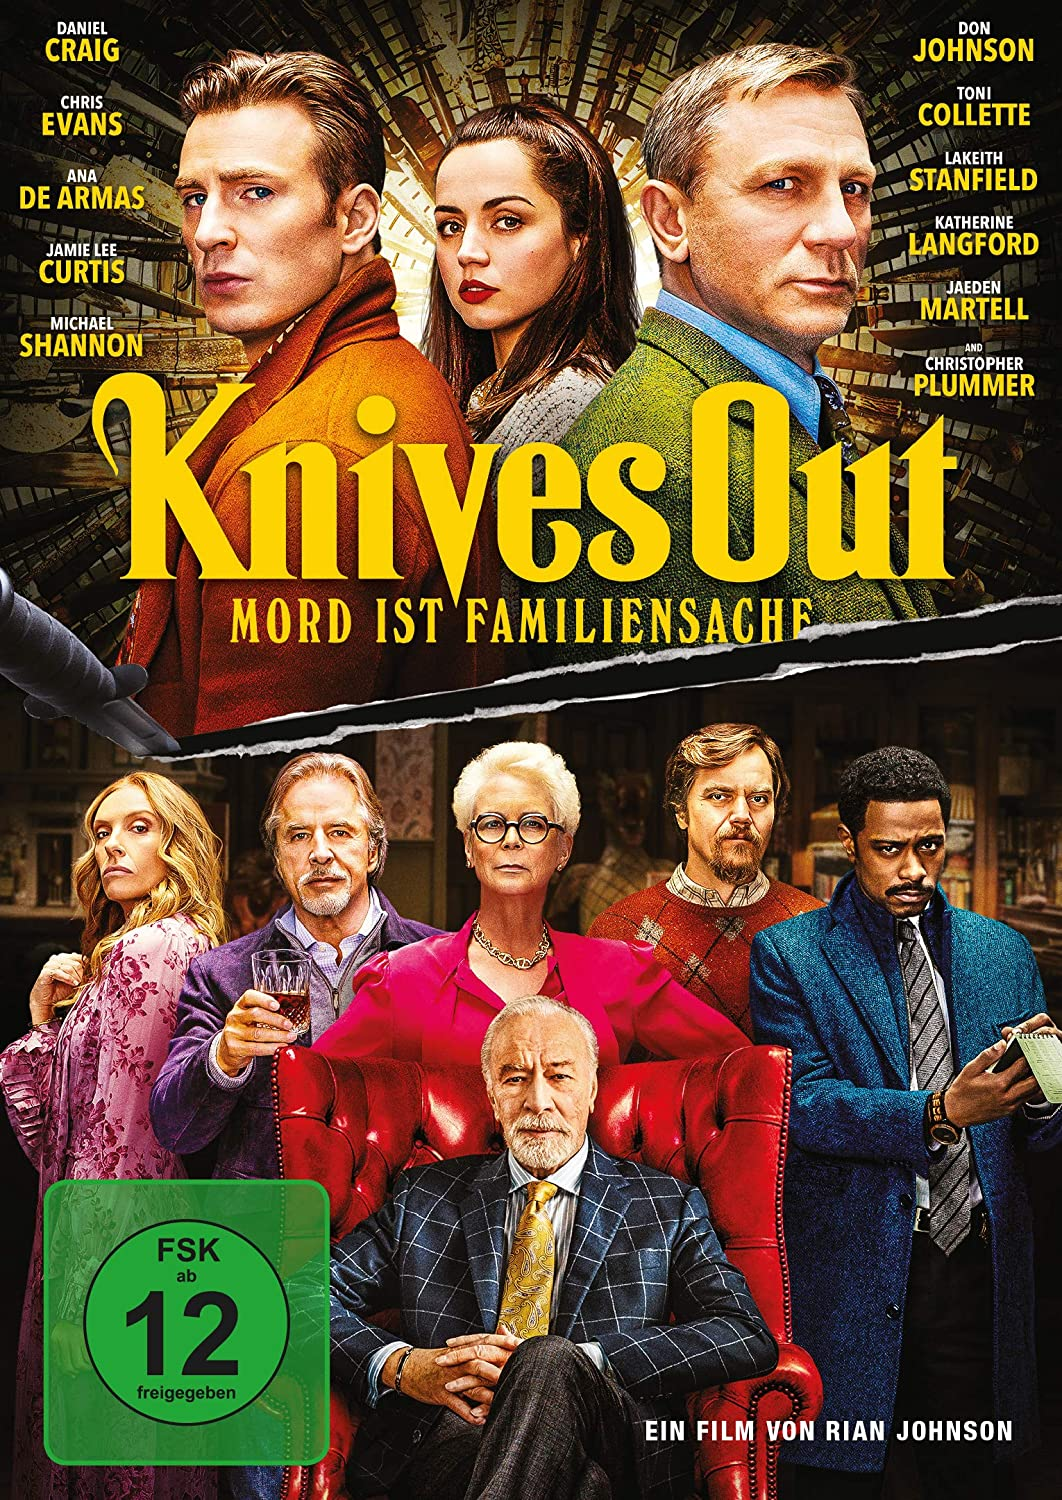 Filmkritik: Knives Out – Mord ist Familiensache - Gamers.at